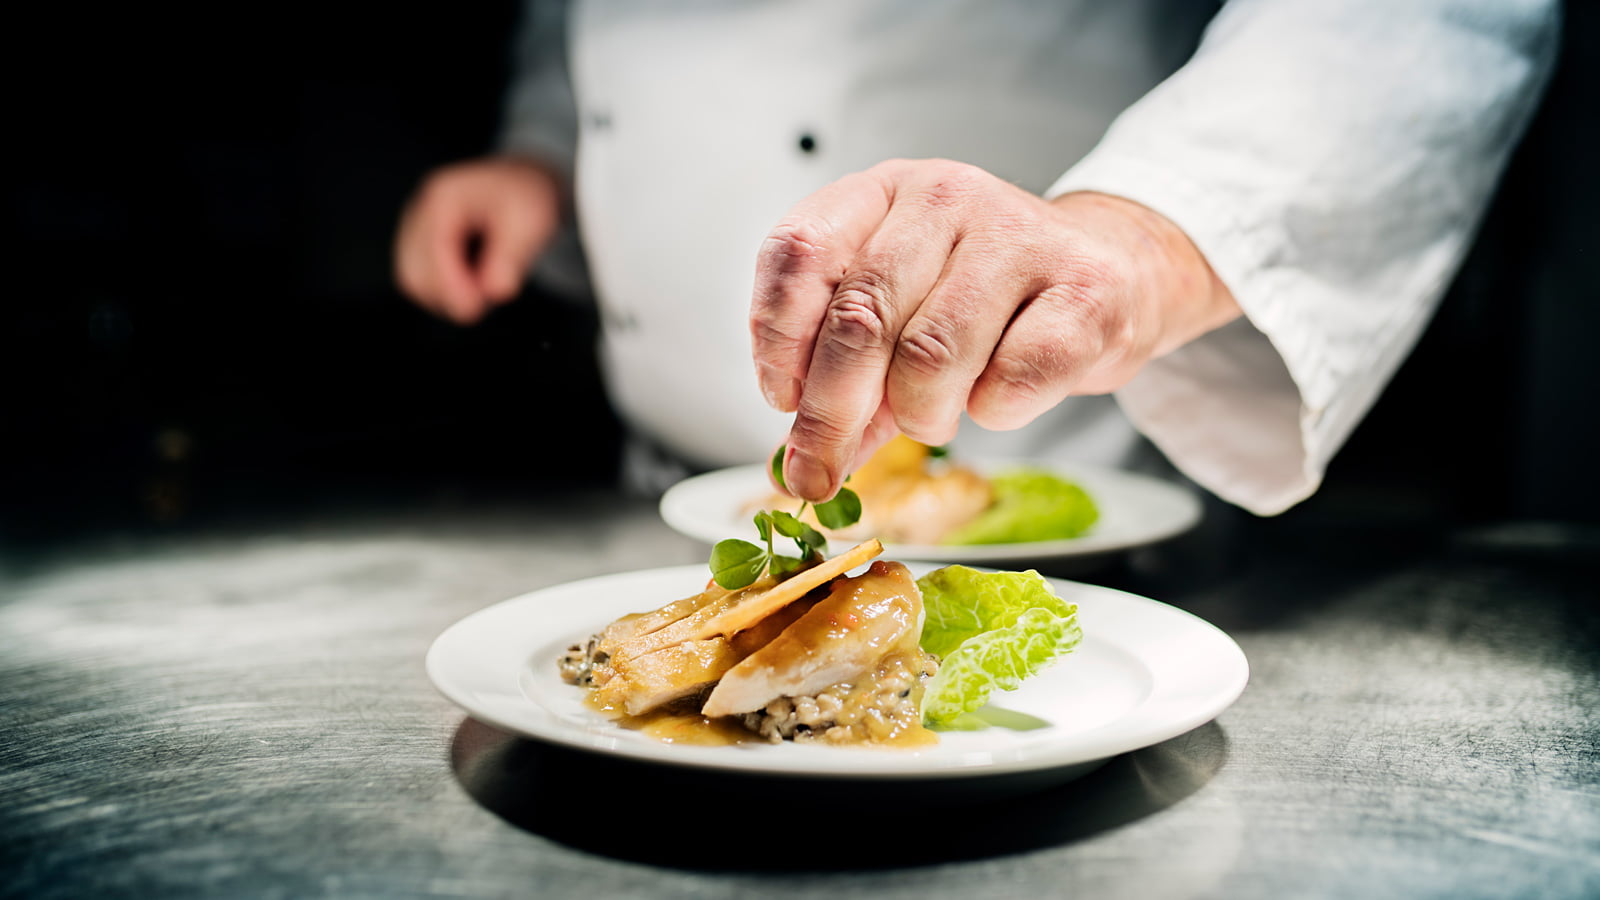 Contract Catering Sector